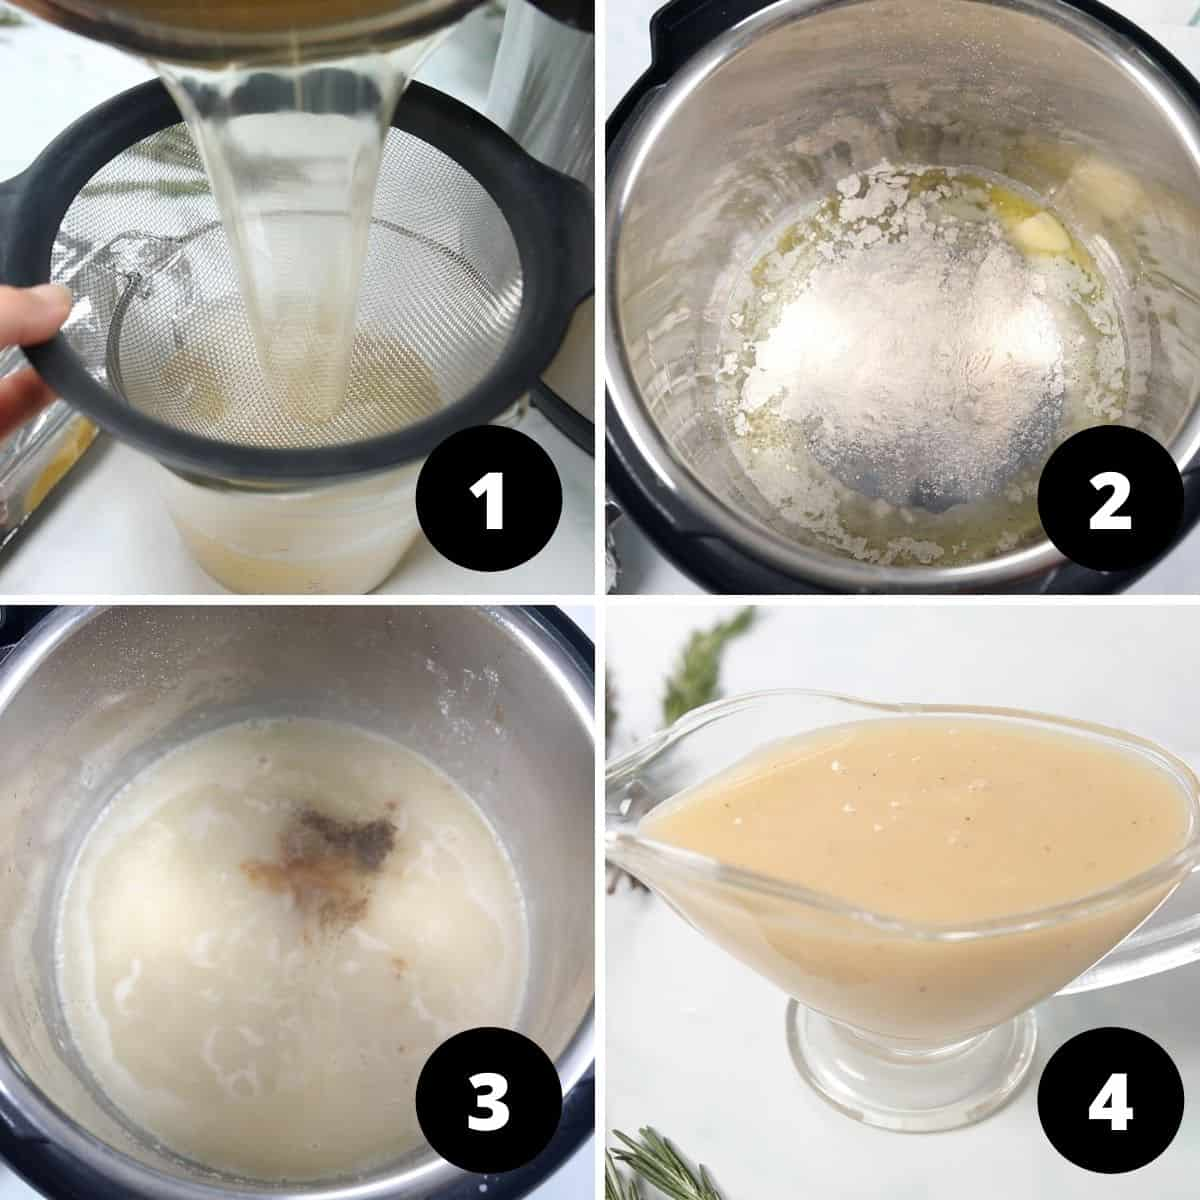 Collage of 4 pictures showing steps to make instant pot gravy.